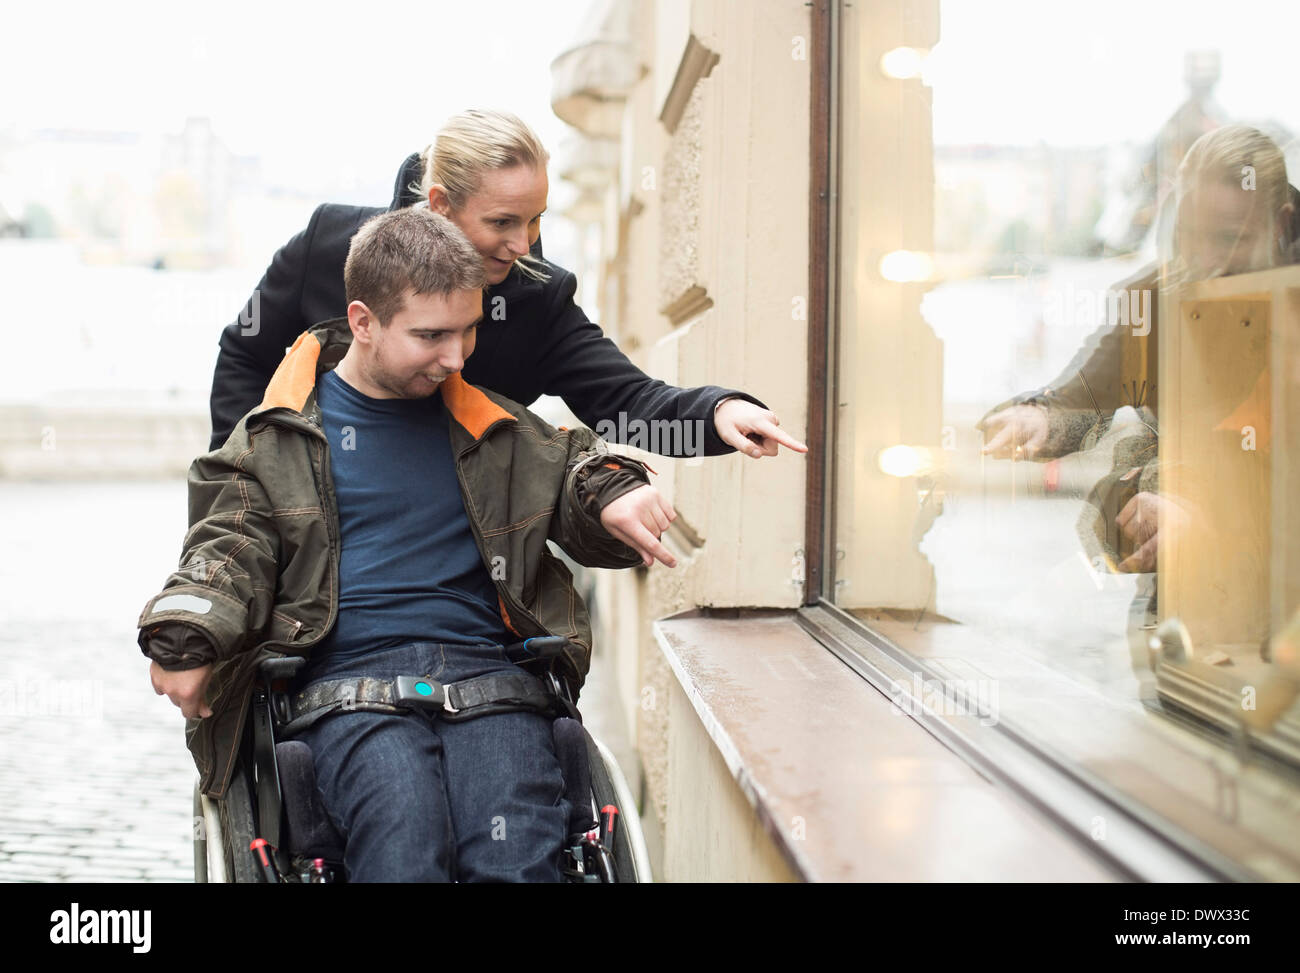 Disabled man on wheelchair widow shopping with caretaker Stock Photo